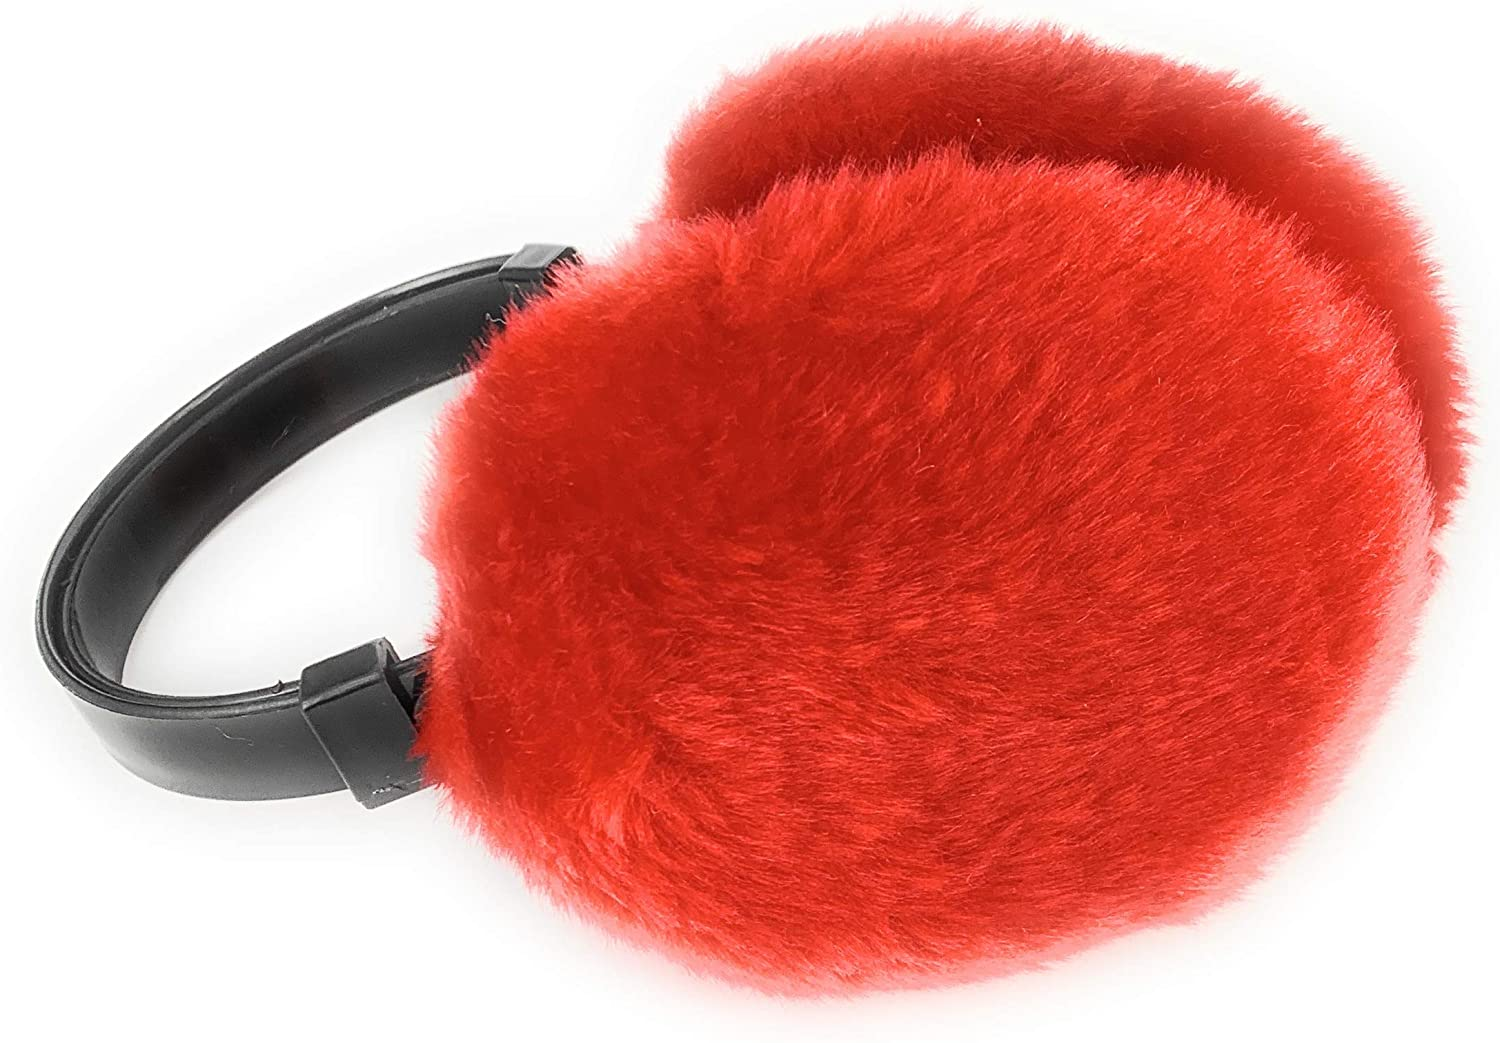 Red faux fur furry ear muffs warmers fold up classic old school style adjustable head band